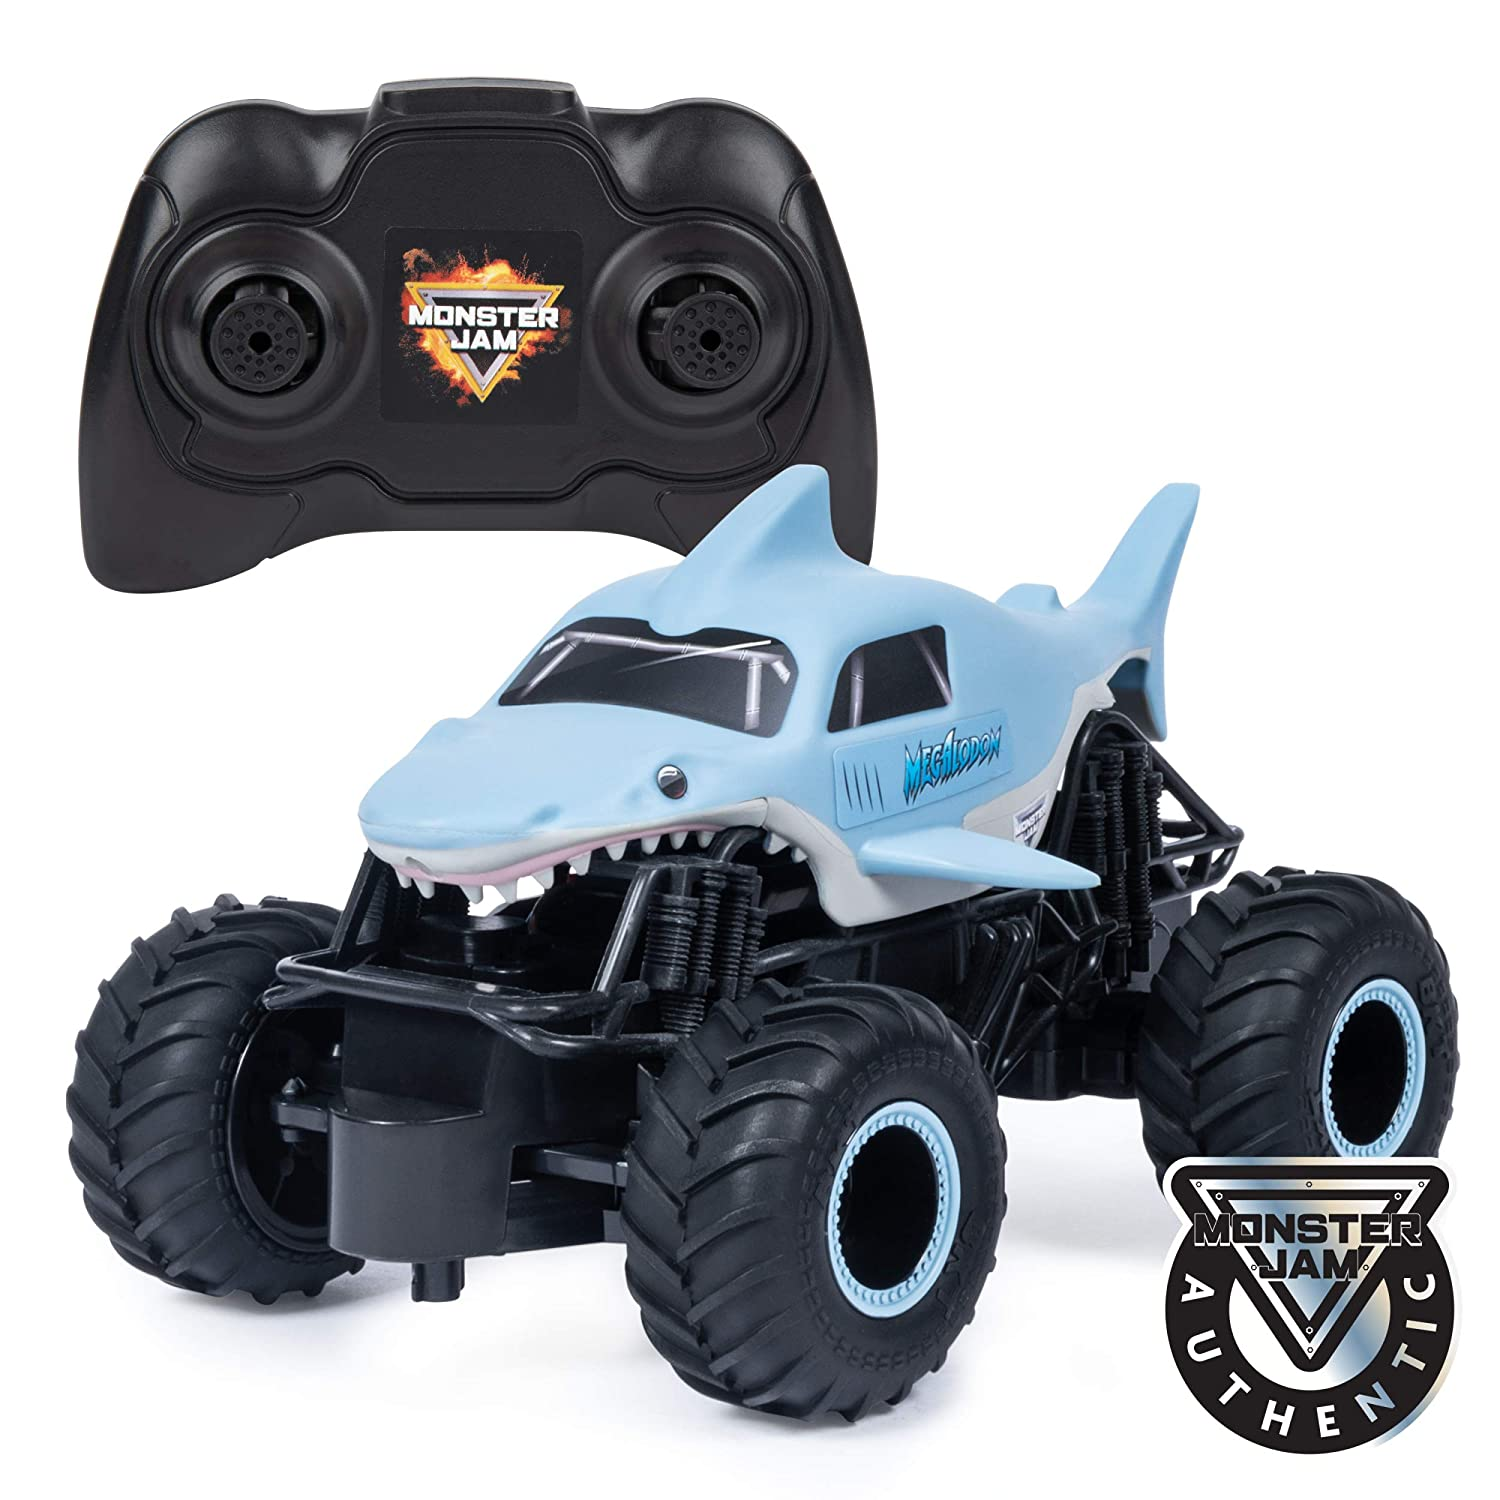 Monster Jam Official Megalodon Remote Control Monster Truck, 1:24 Scale, 2.4 GHz, for Ages 4 and Up